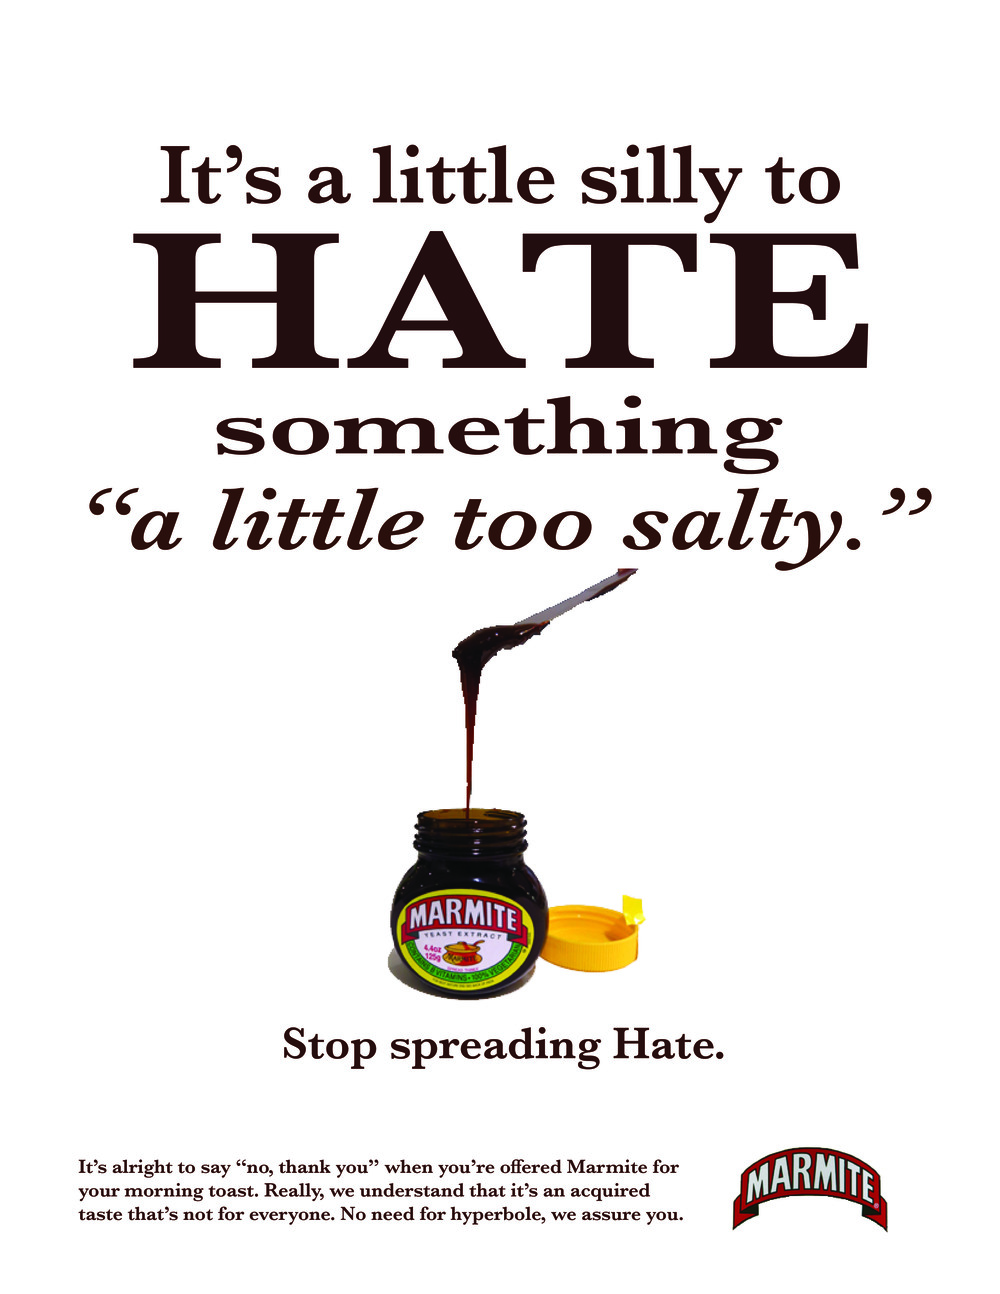 "It's alright to say ""no, thank you"" when you're offered Marmite for your morning toast. Really, we understand that it's an acquired taste that's not for everyone. No need for hyperbole, we assure you."